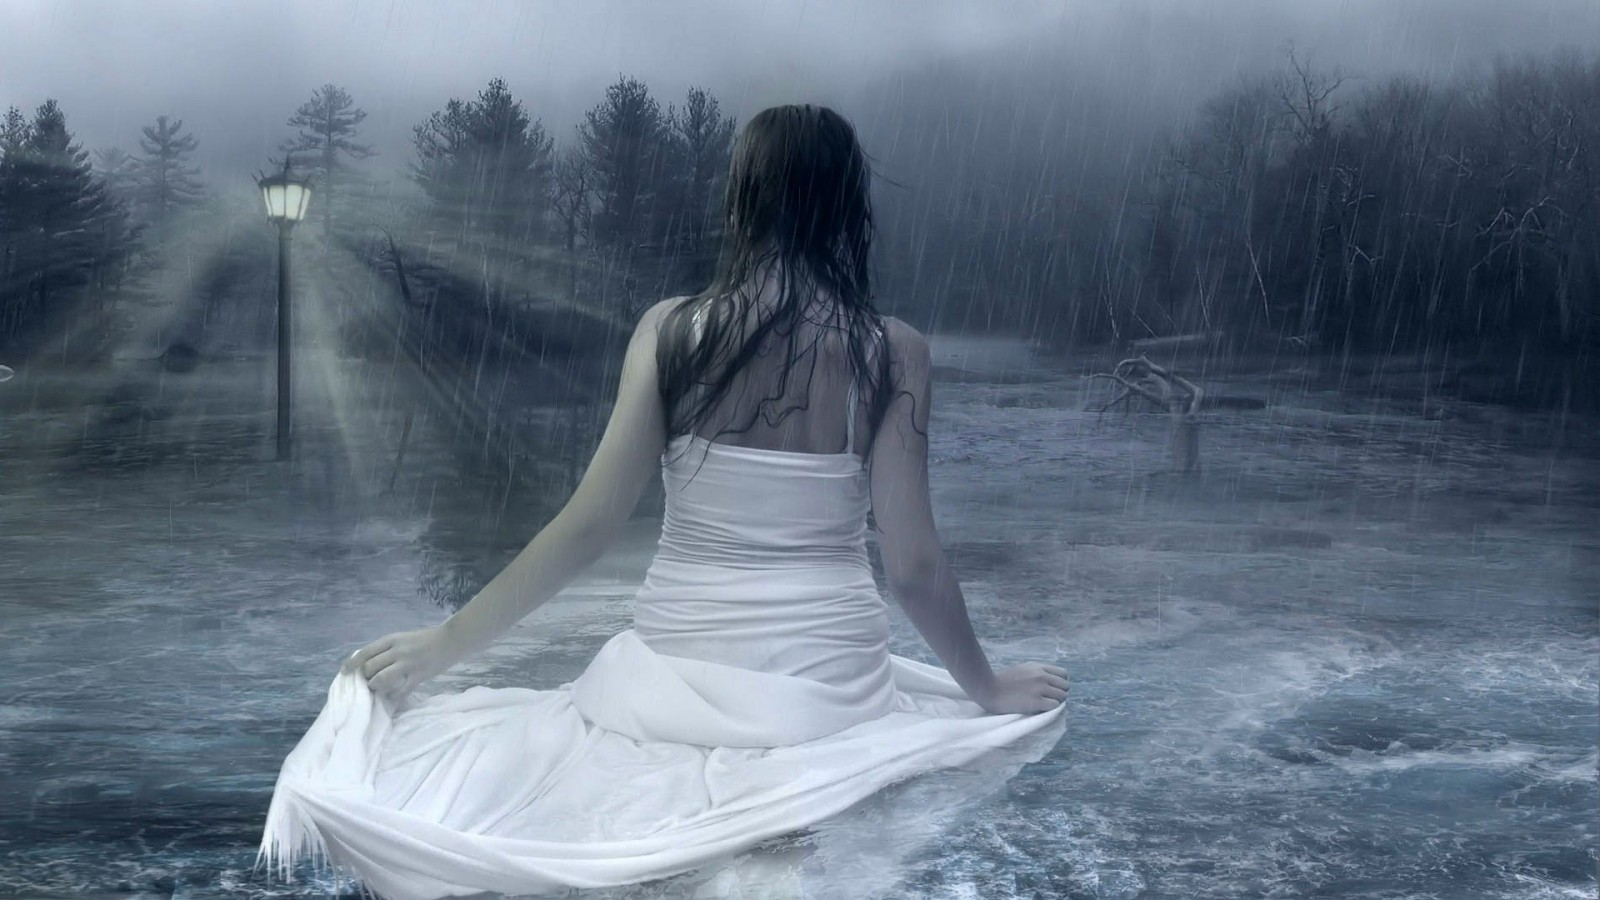 WALLPAPERS: sad alone girls wallpapers | sad alone girls ...